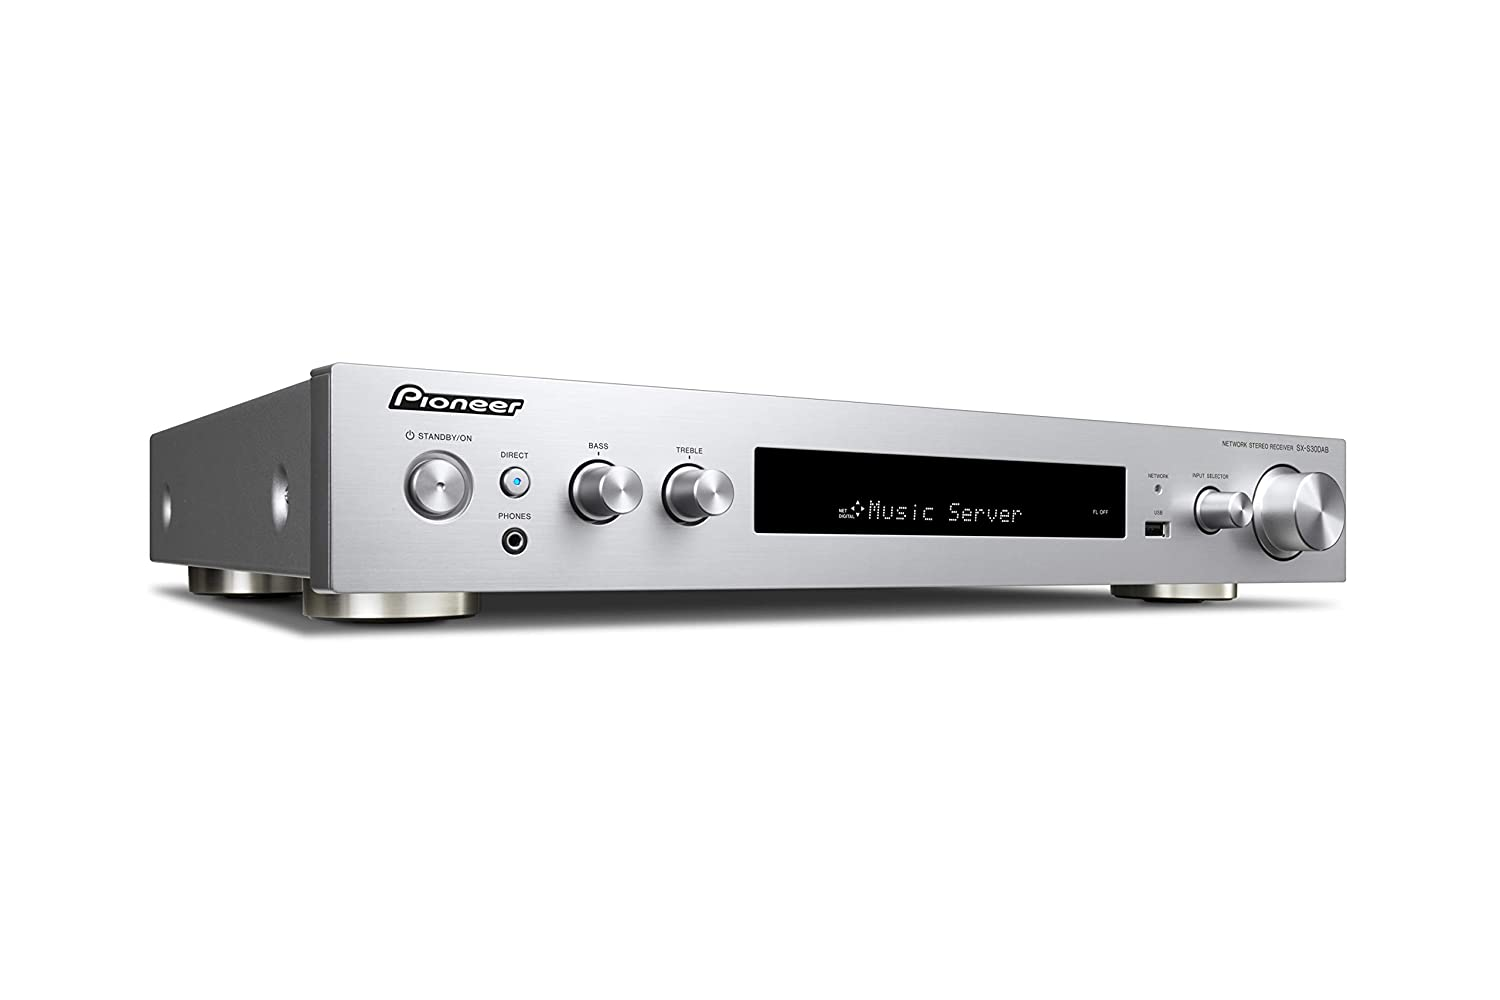 DAB+ Streaming Silber Front USB//Audio in Musik Apps SX-S30DAB-S Pioneer Stereo Receiver Bluetooth High-Res Audio Dolby TrueHD 85 Watt//Kanal Spotify, Deezer u.a. HDMI WLAN